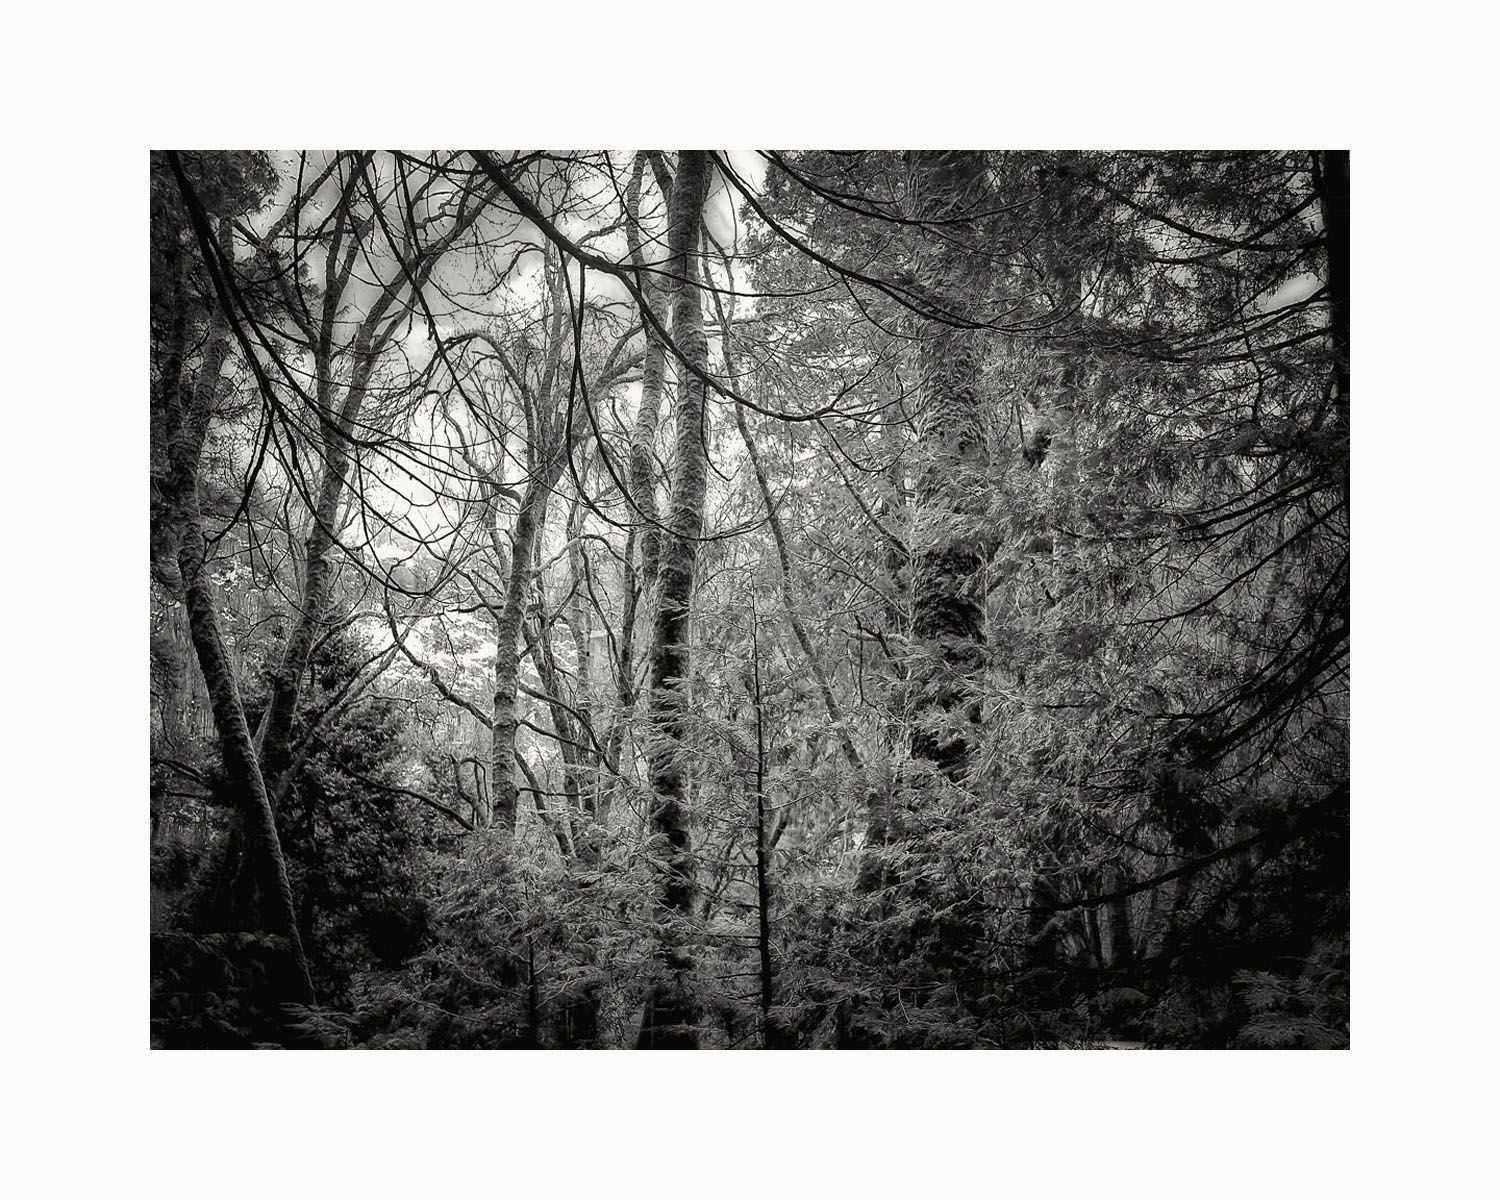 1enchanted_forest_b_w_16x20